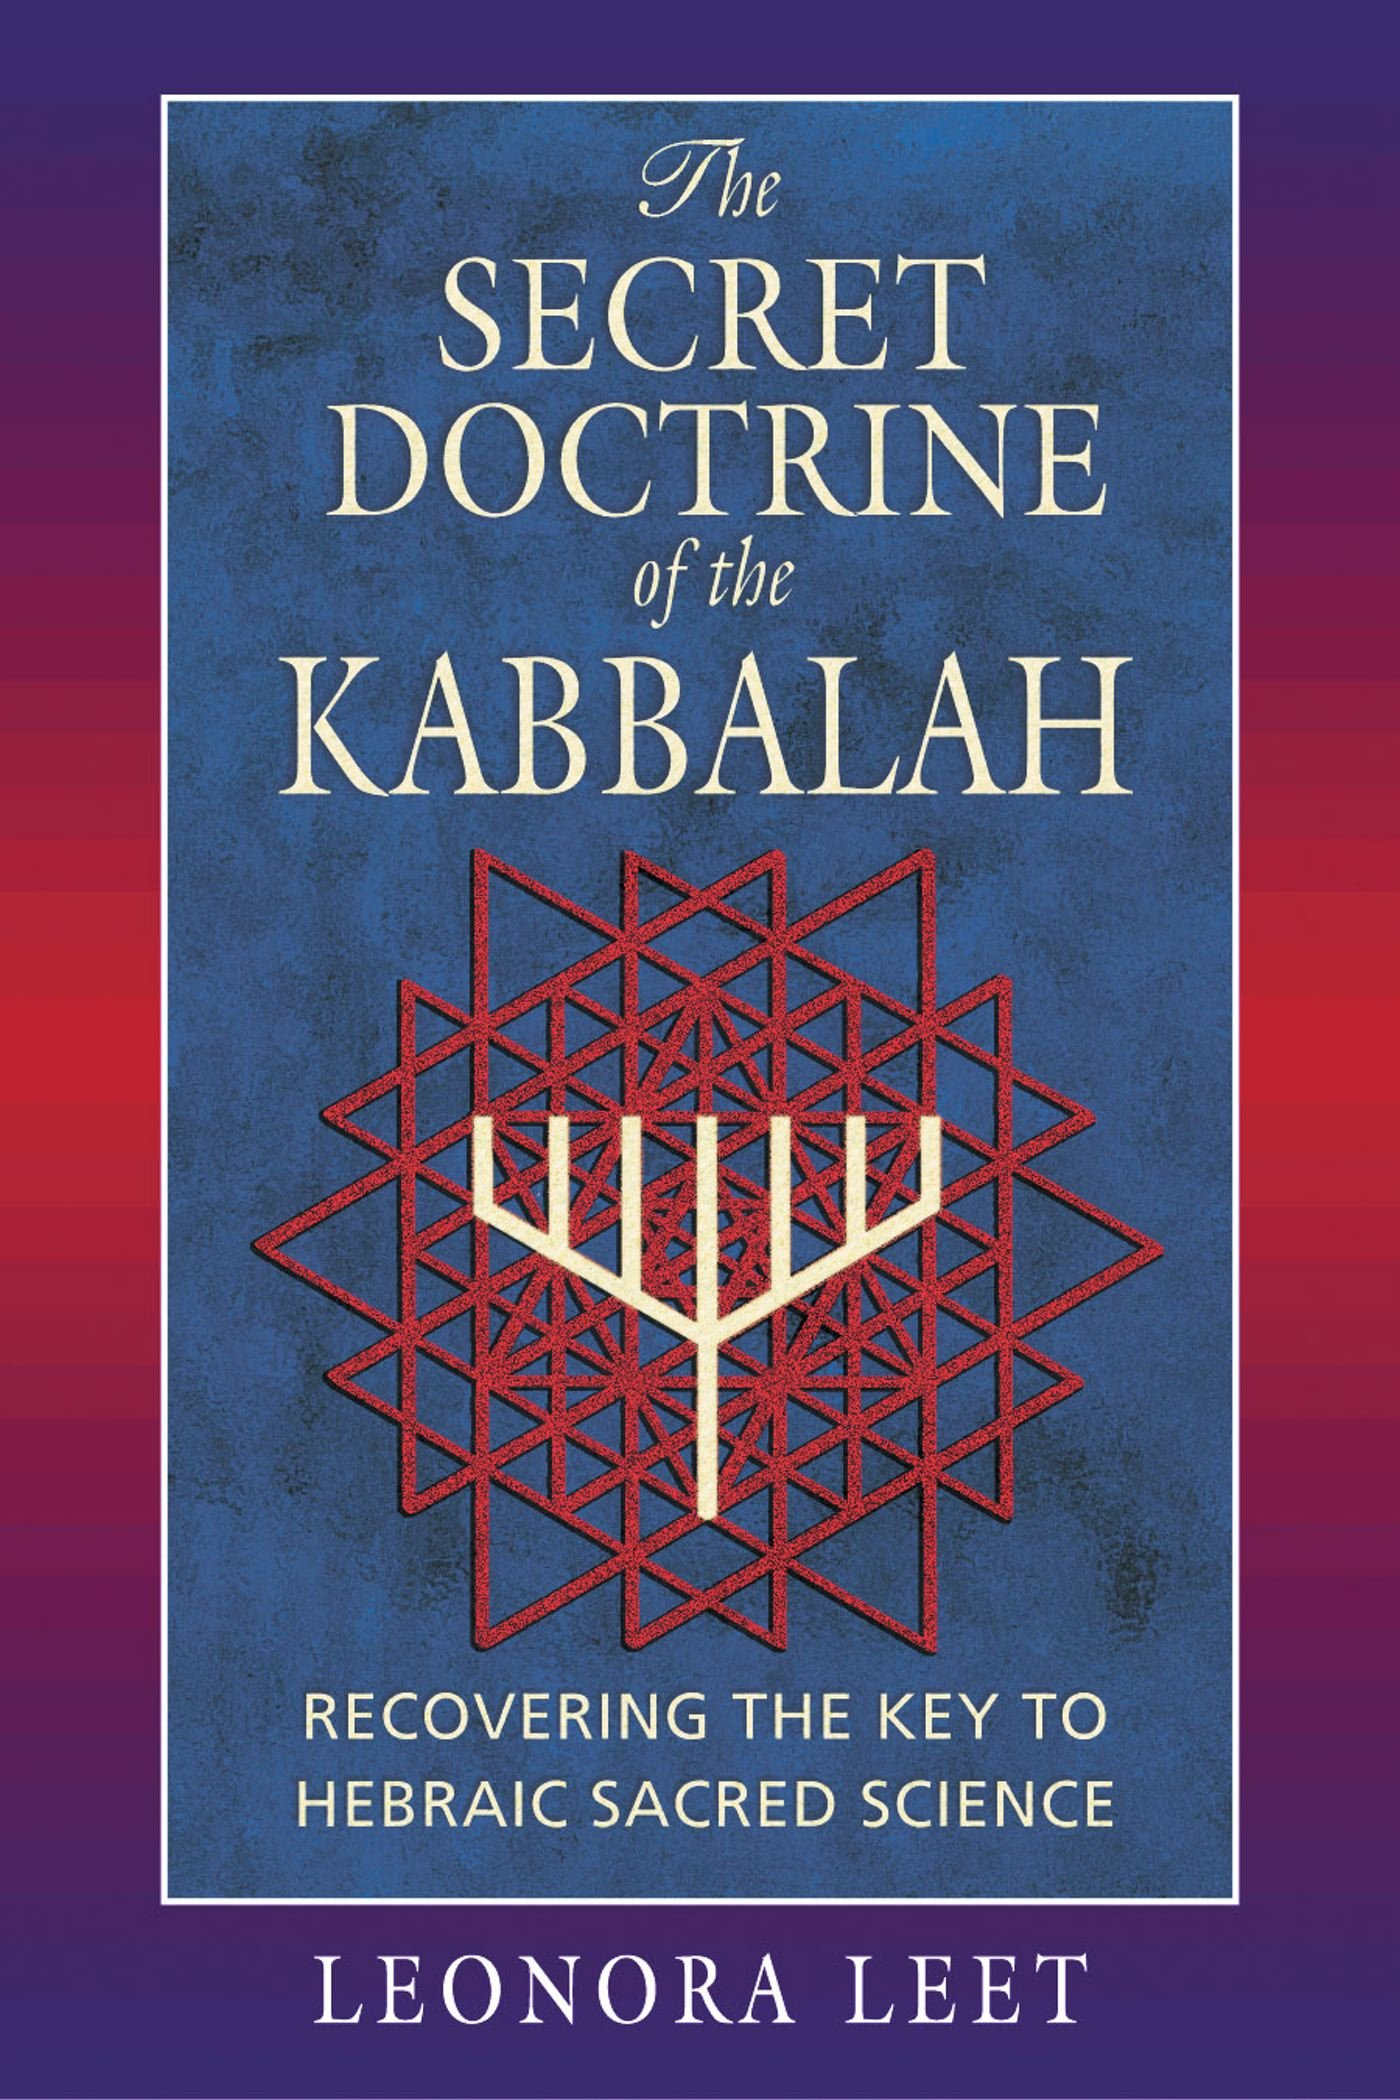 The Secret Doctrine of the Kabbalah: Recovering the Key to Hebraic Sacred Science